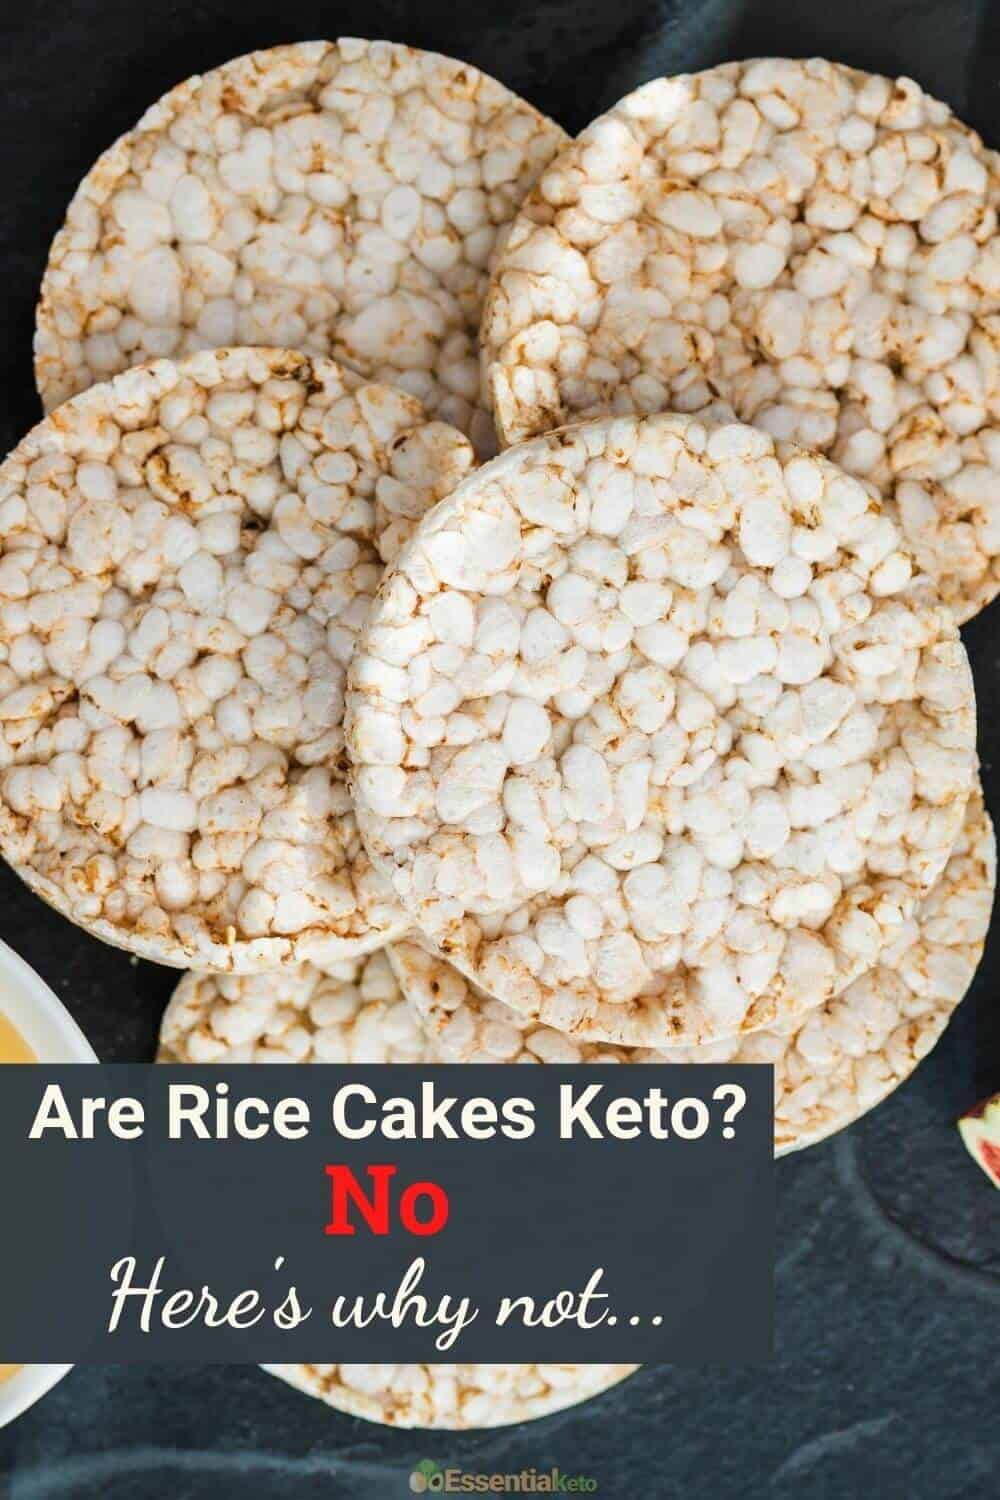 Are Rice Cakes Keto?